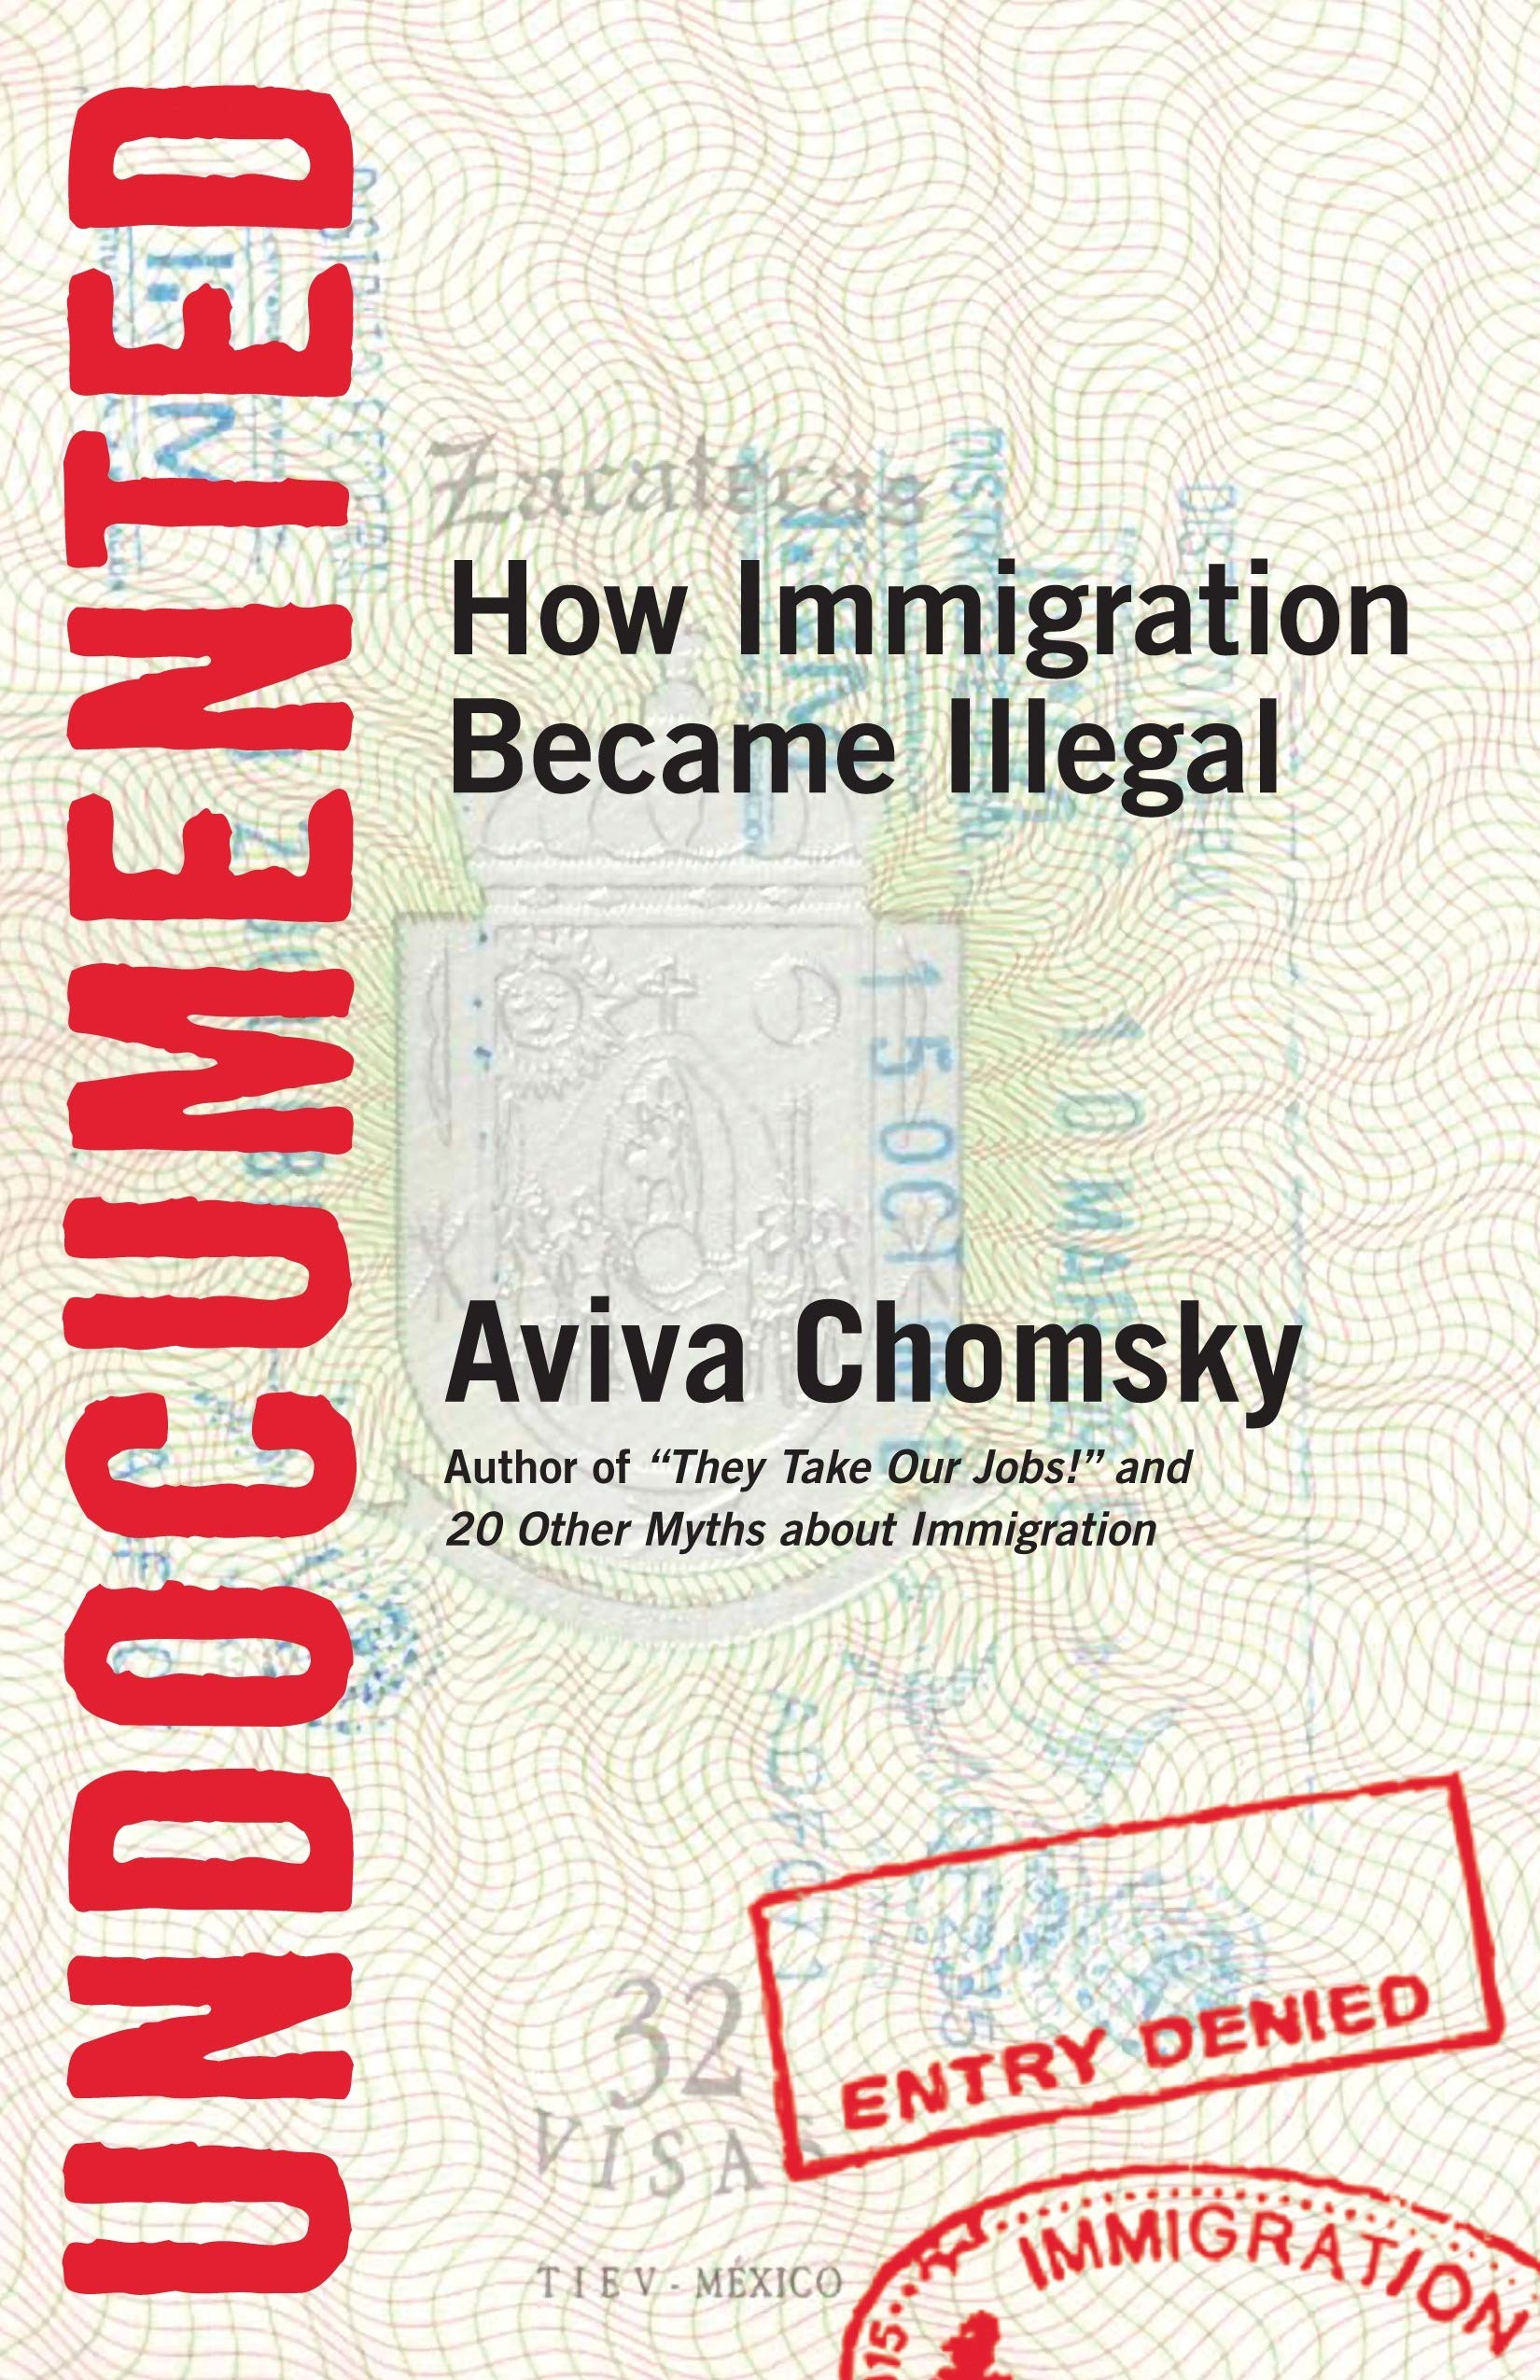 Undocumented: How Immigration Became Illegal Paperback – May 13, 2014 Aviva Chomsky Beacon Press 0807001678 Emigration & Immigration